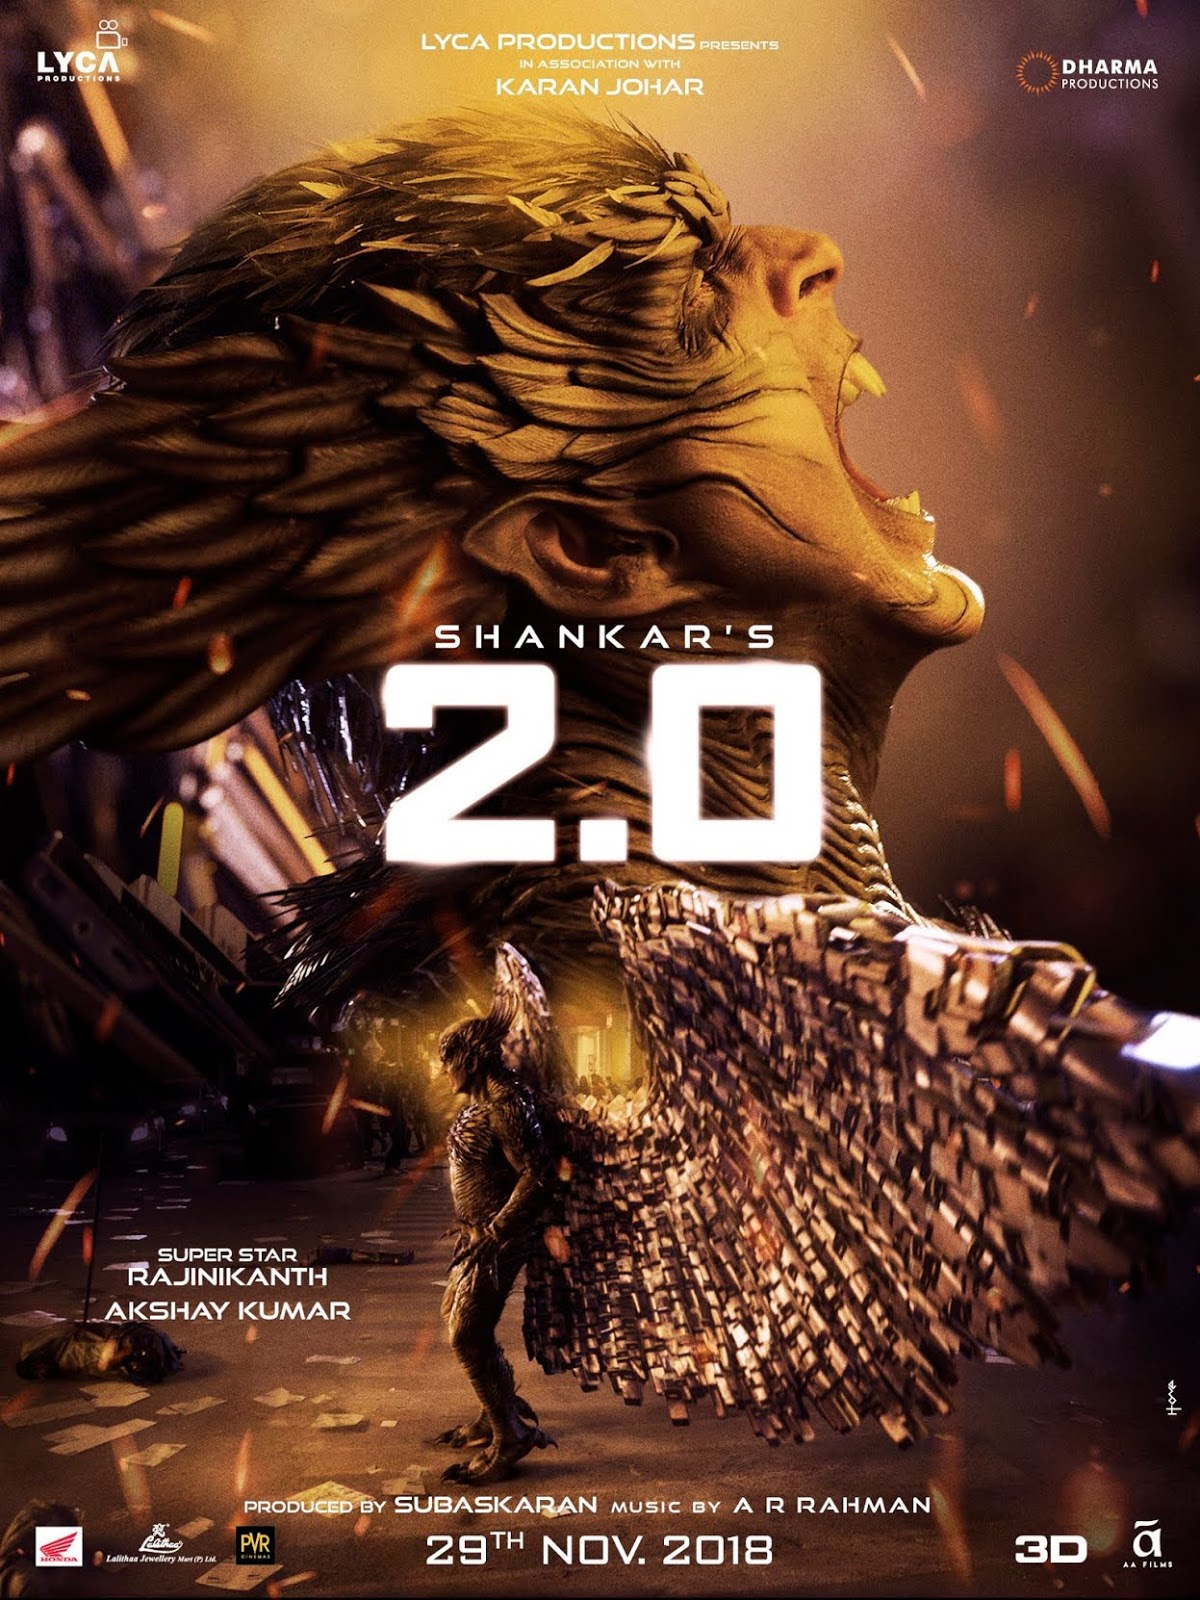 watch robot 2.0 (2018) full movie download in hindi 720p